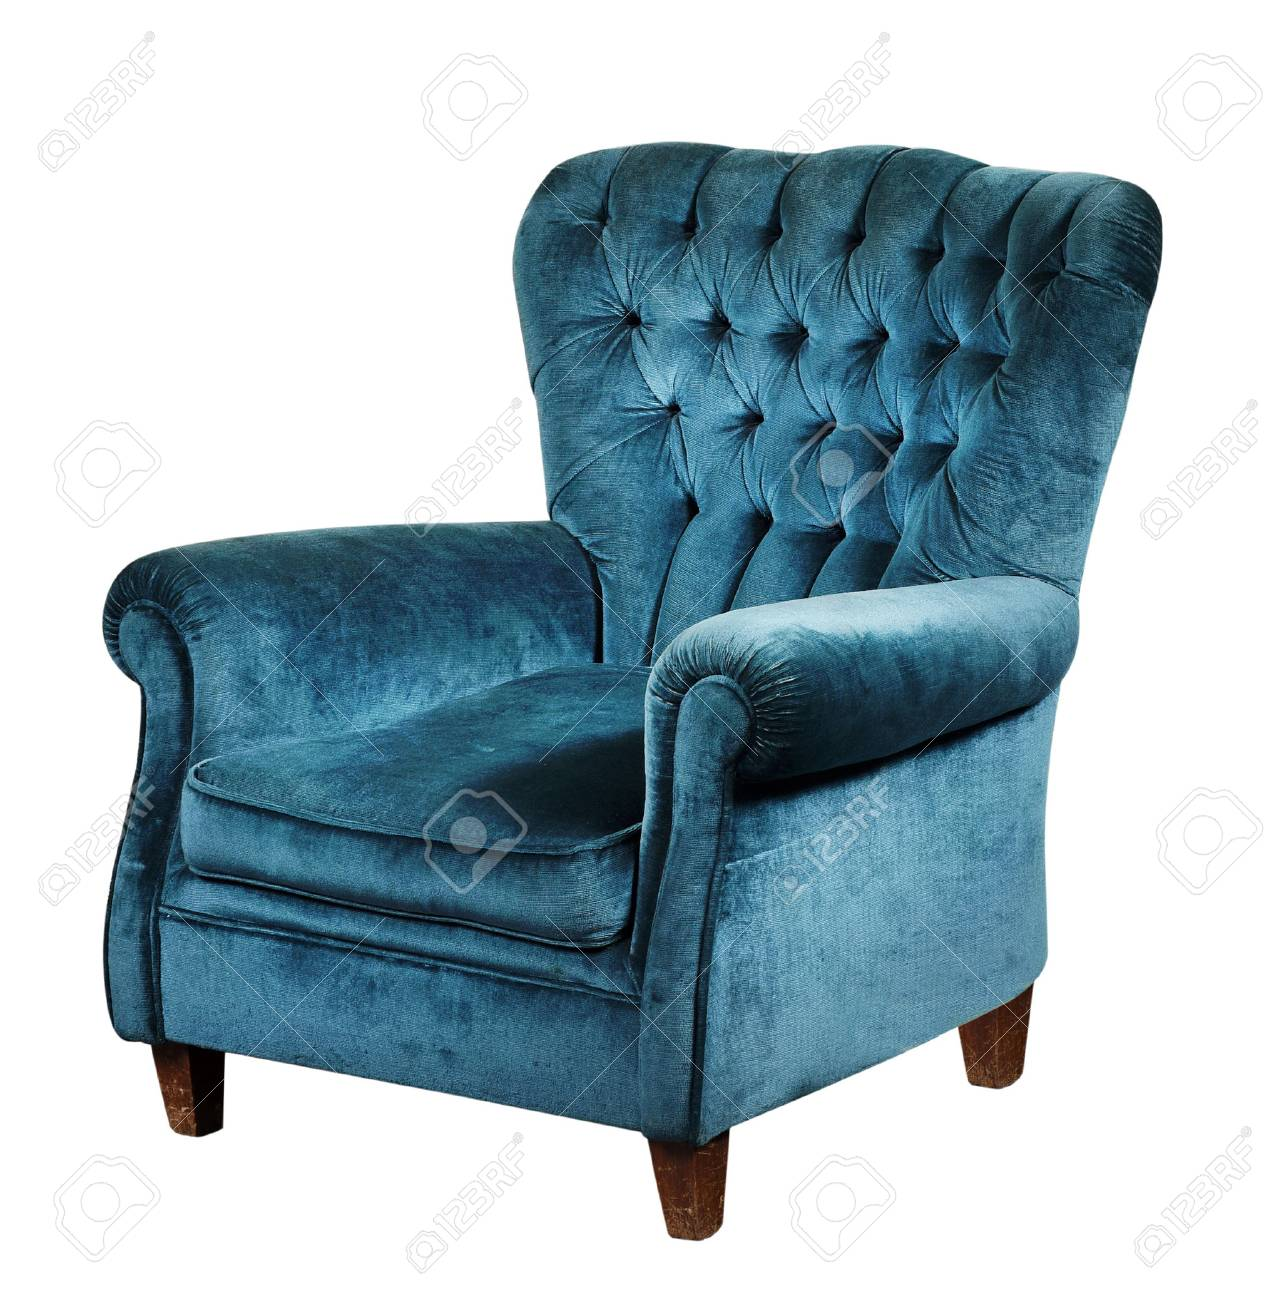 Blue Velvet Armchair With High Back And Short Wooden Legs, Isolated On  White Background Stock